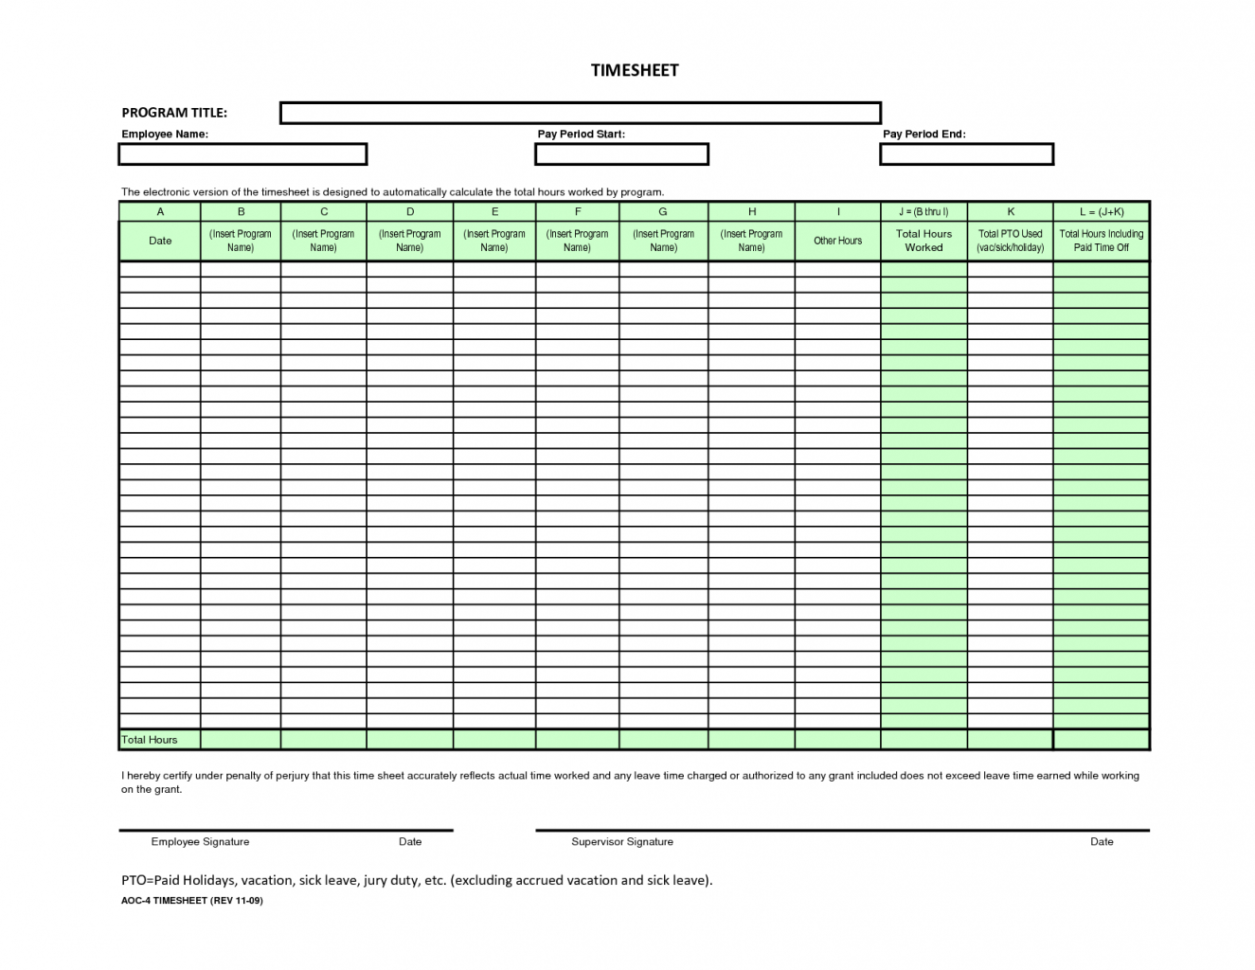 Vacation Expense Spreadsheet Template In Vacation Accrual Spreadsheet  Homebiz4U2Profit